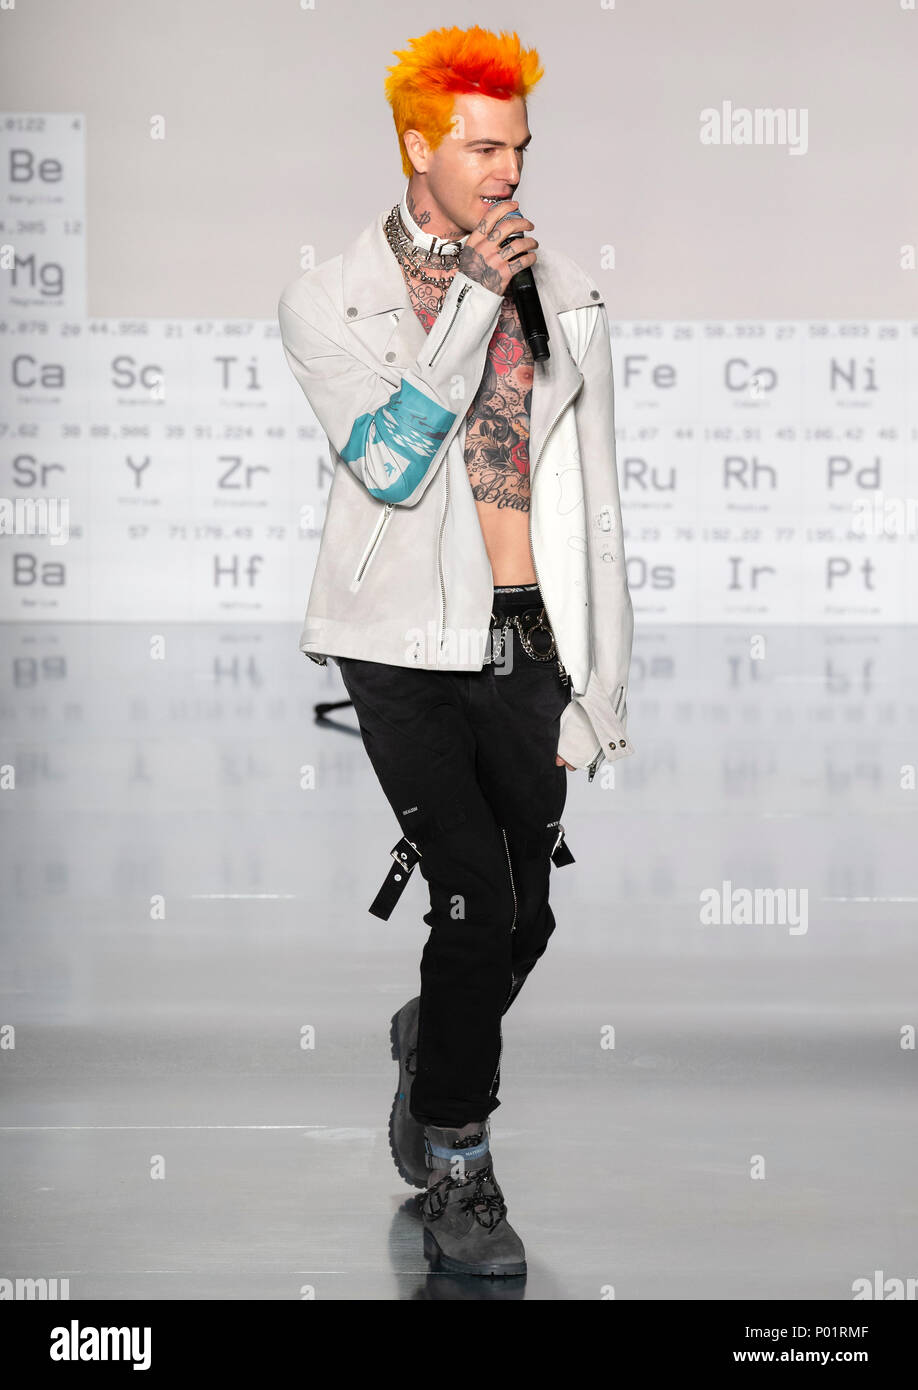 NEW YORK, NY - Feb 05, 2018: A performer sings at the C2H4 Los Angeles Show during New York Fashion Week Men's F/W 2018 - Stock Image